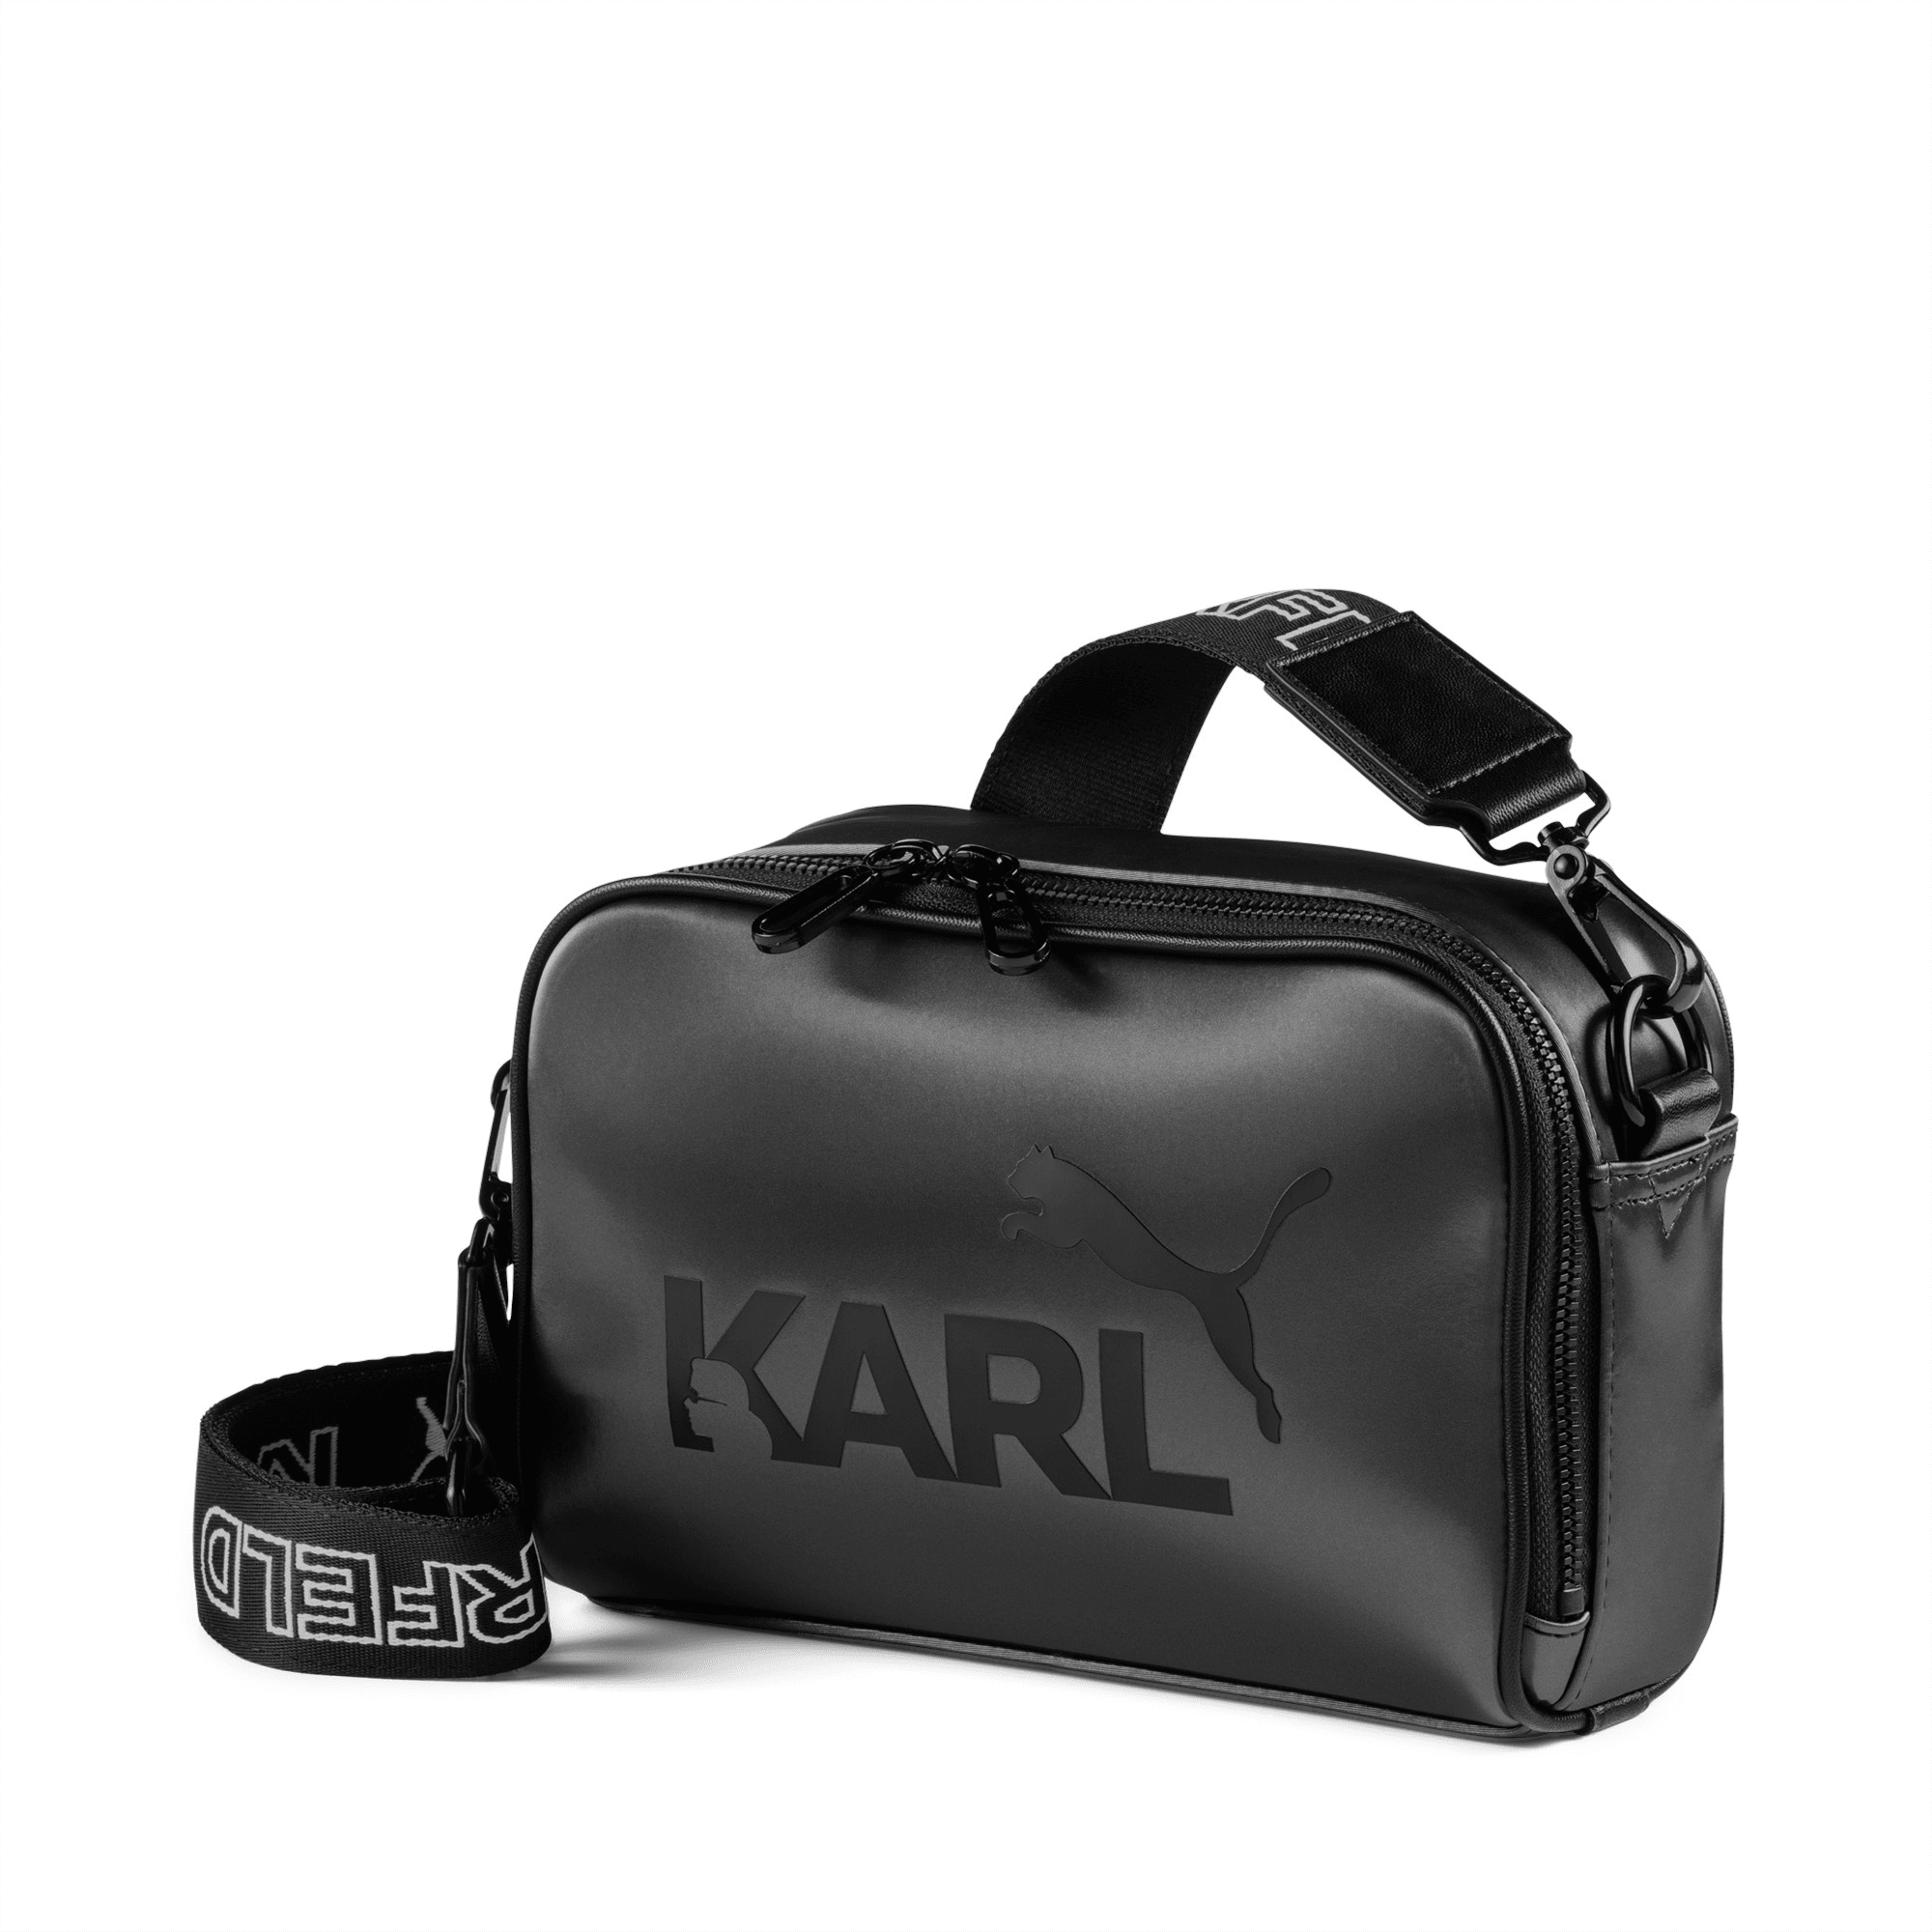 PUMA x KARL LAGERFELD Small Shoulder Bag